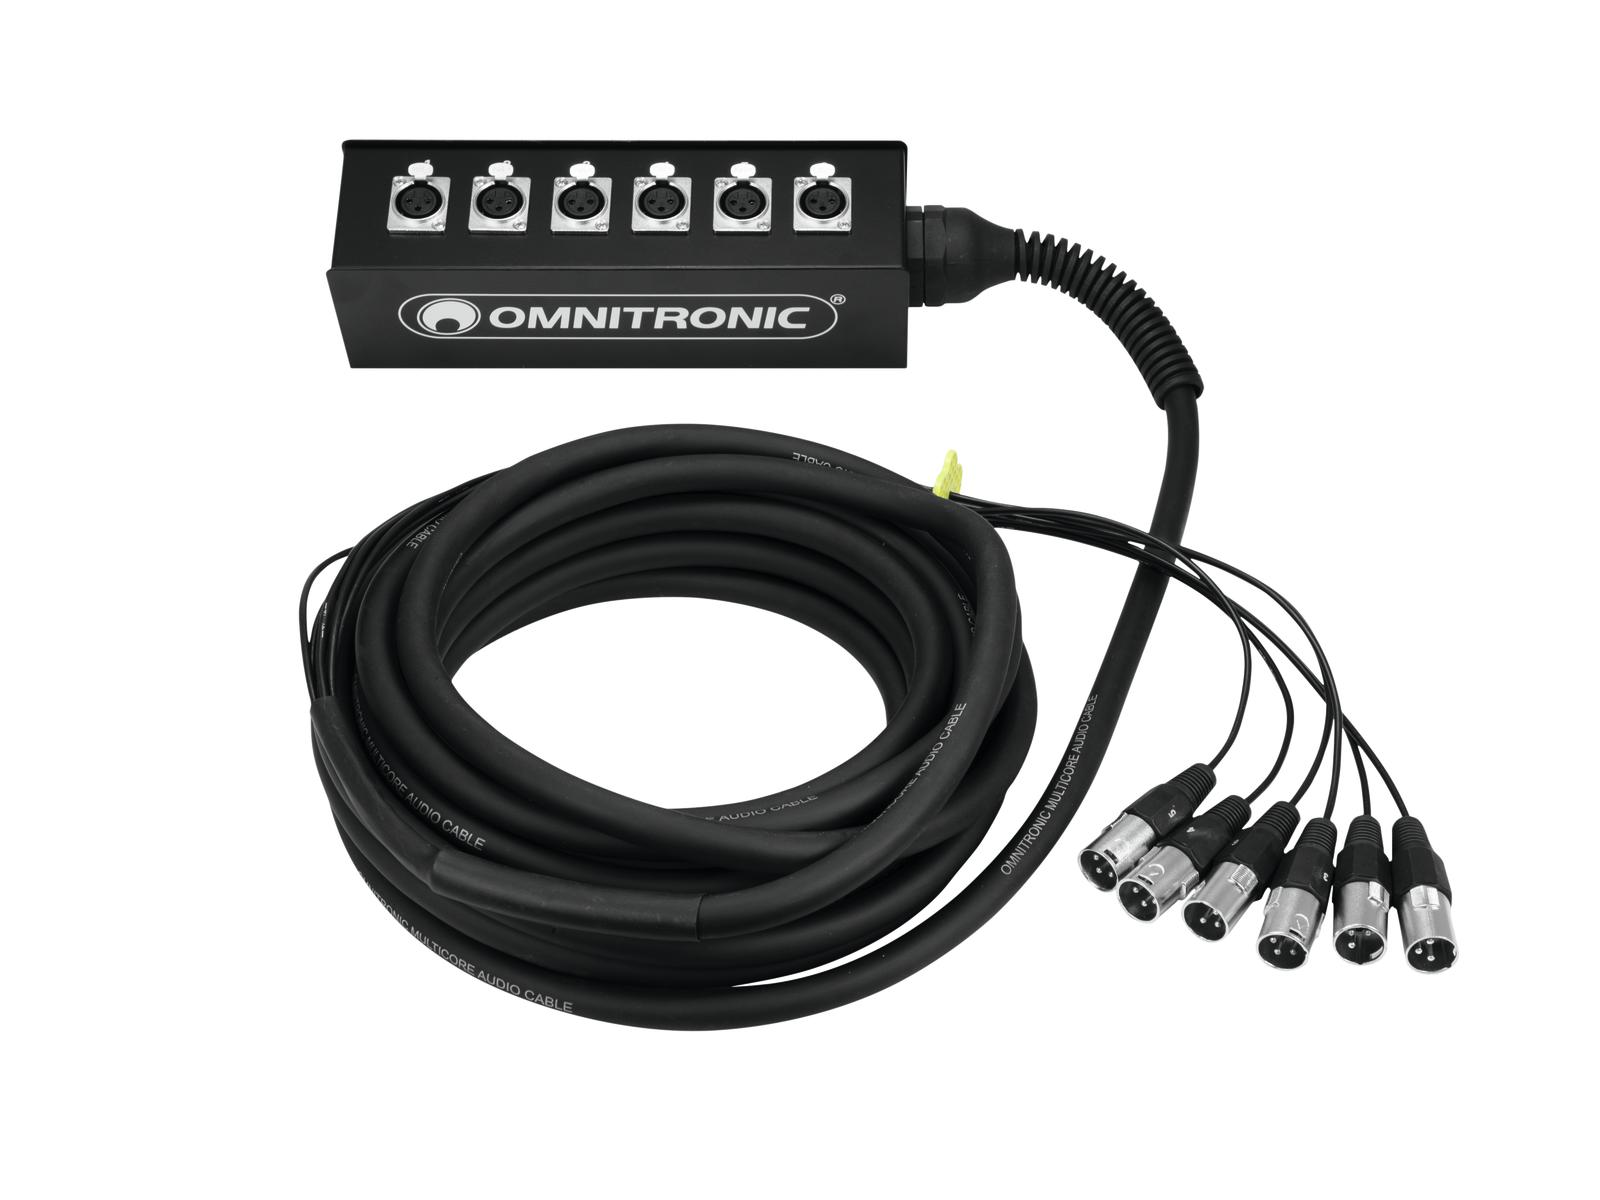 OMNITRONIC Multicore Stagebox 6IN 10m